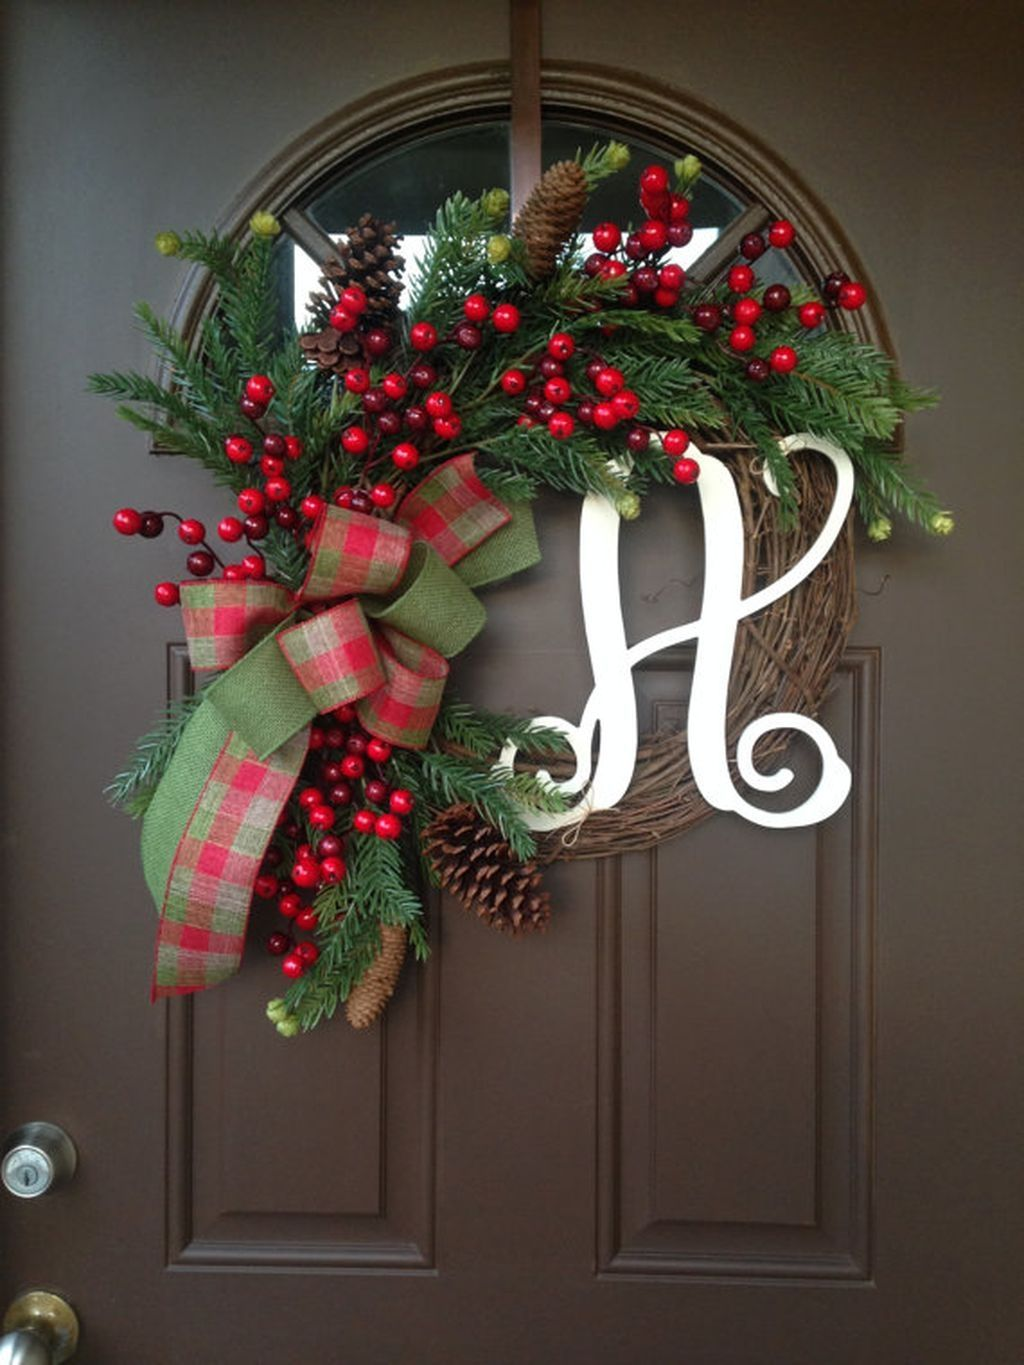 Awesome eye catching rustic christmas decoration ideas to jazz up